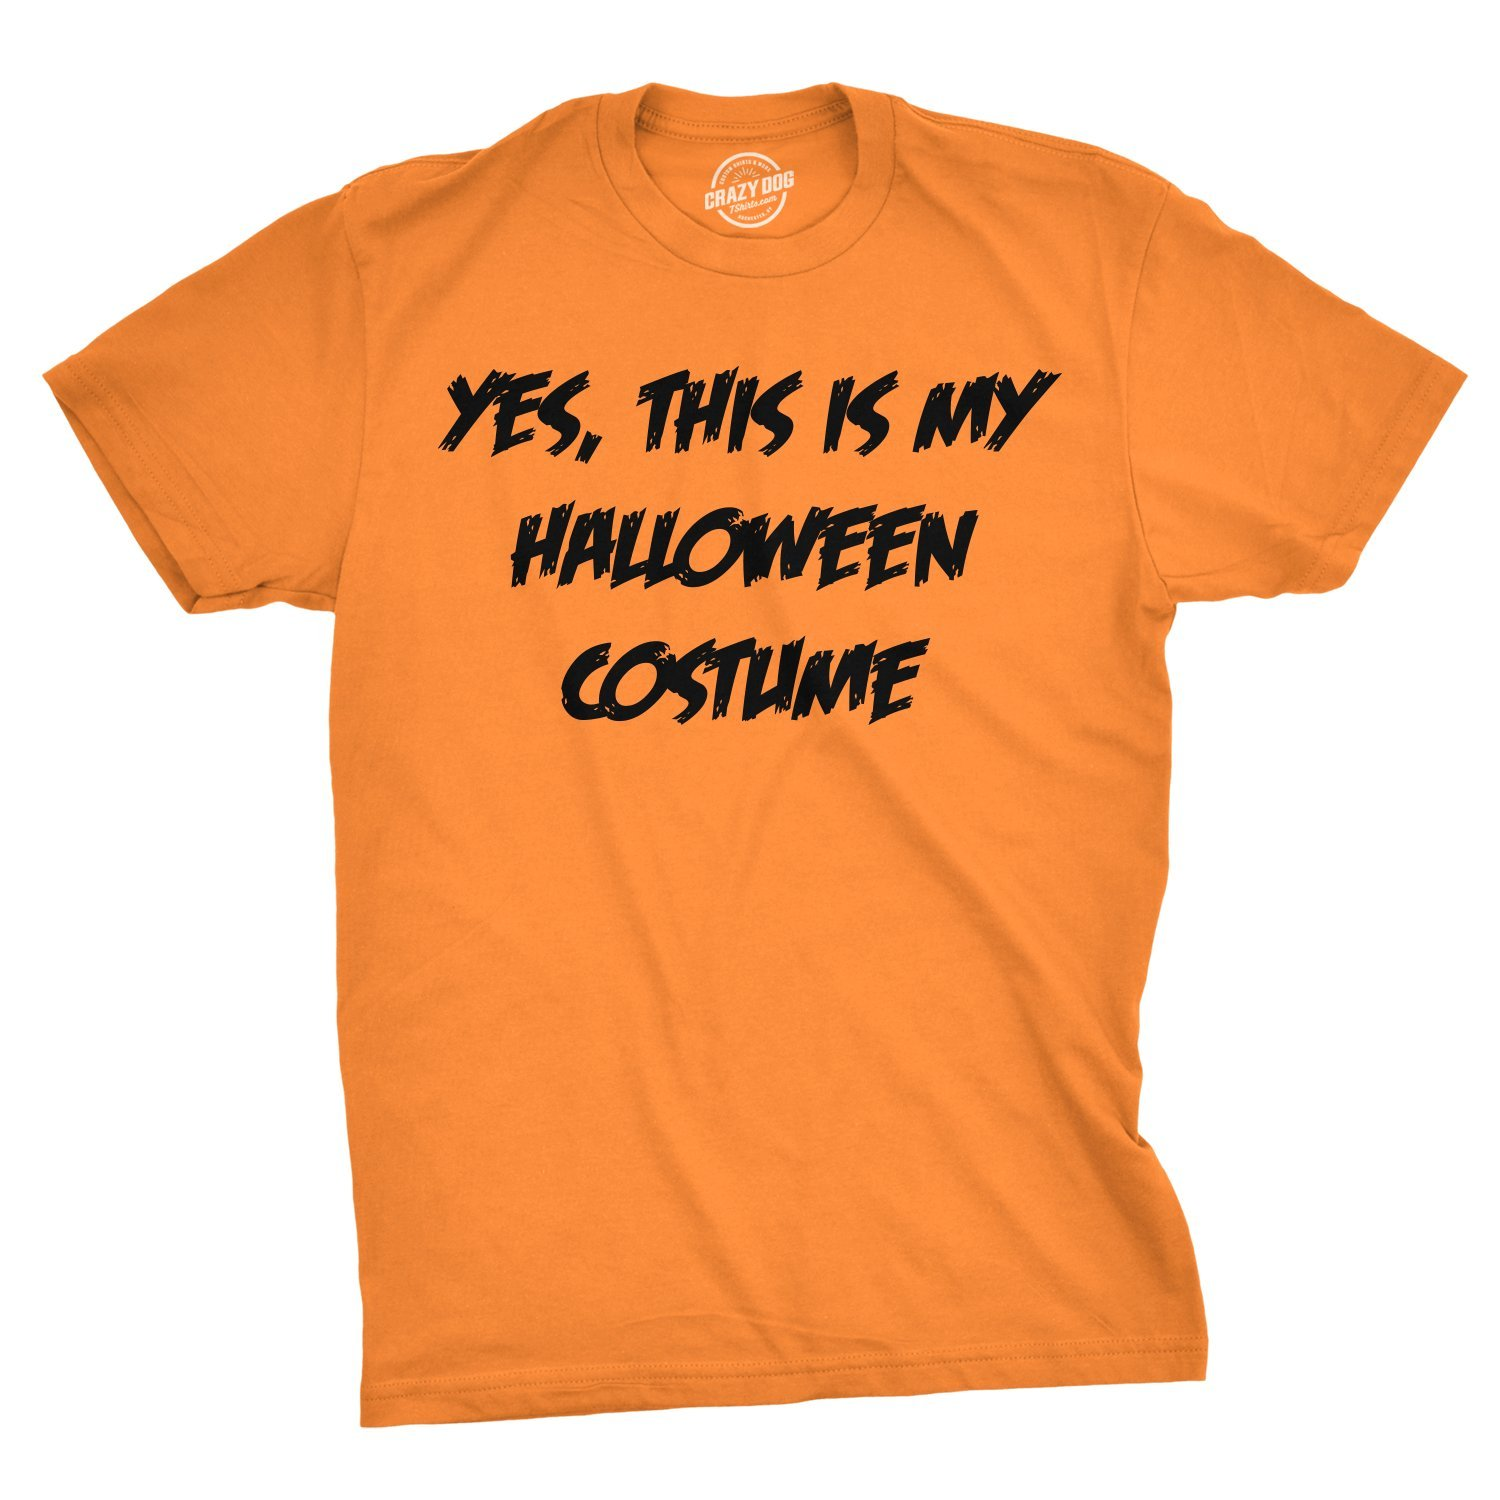 This Is My Halloween Costume T Shirt Funny Fake Halloween Costume Parody Tee Crazy Dog Tshirts